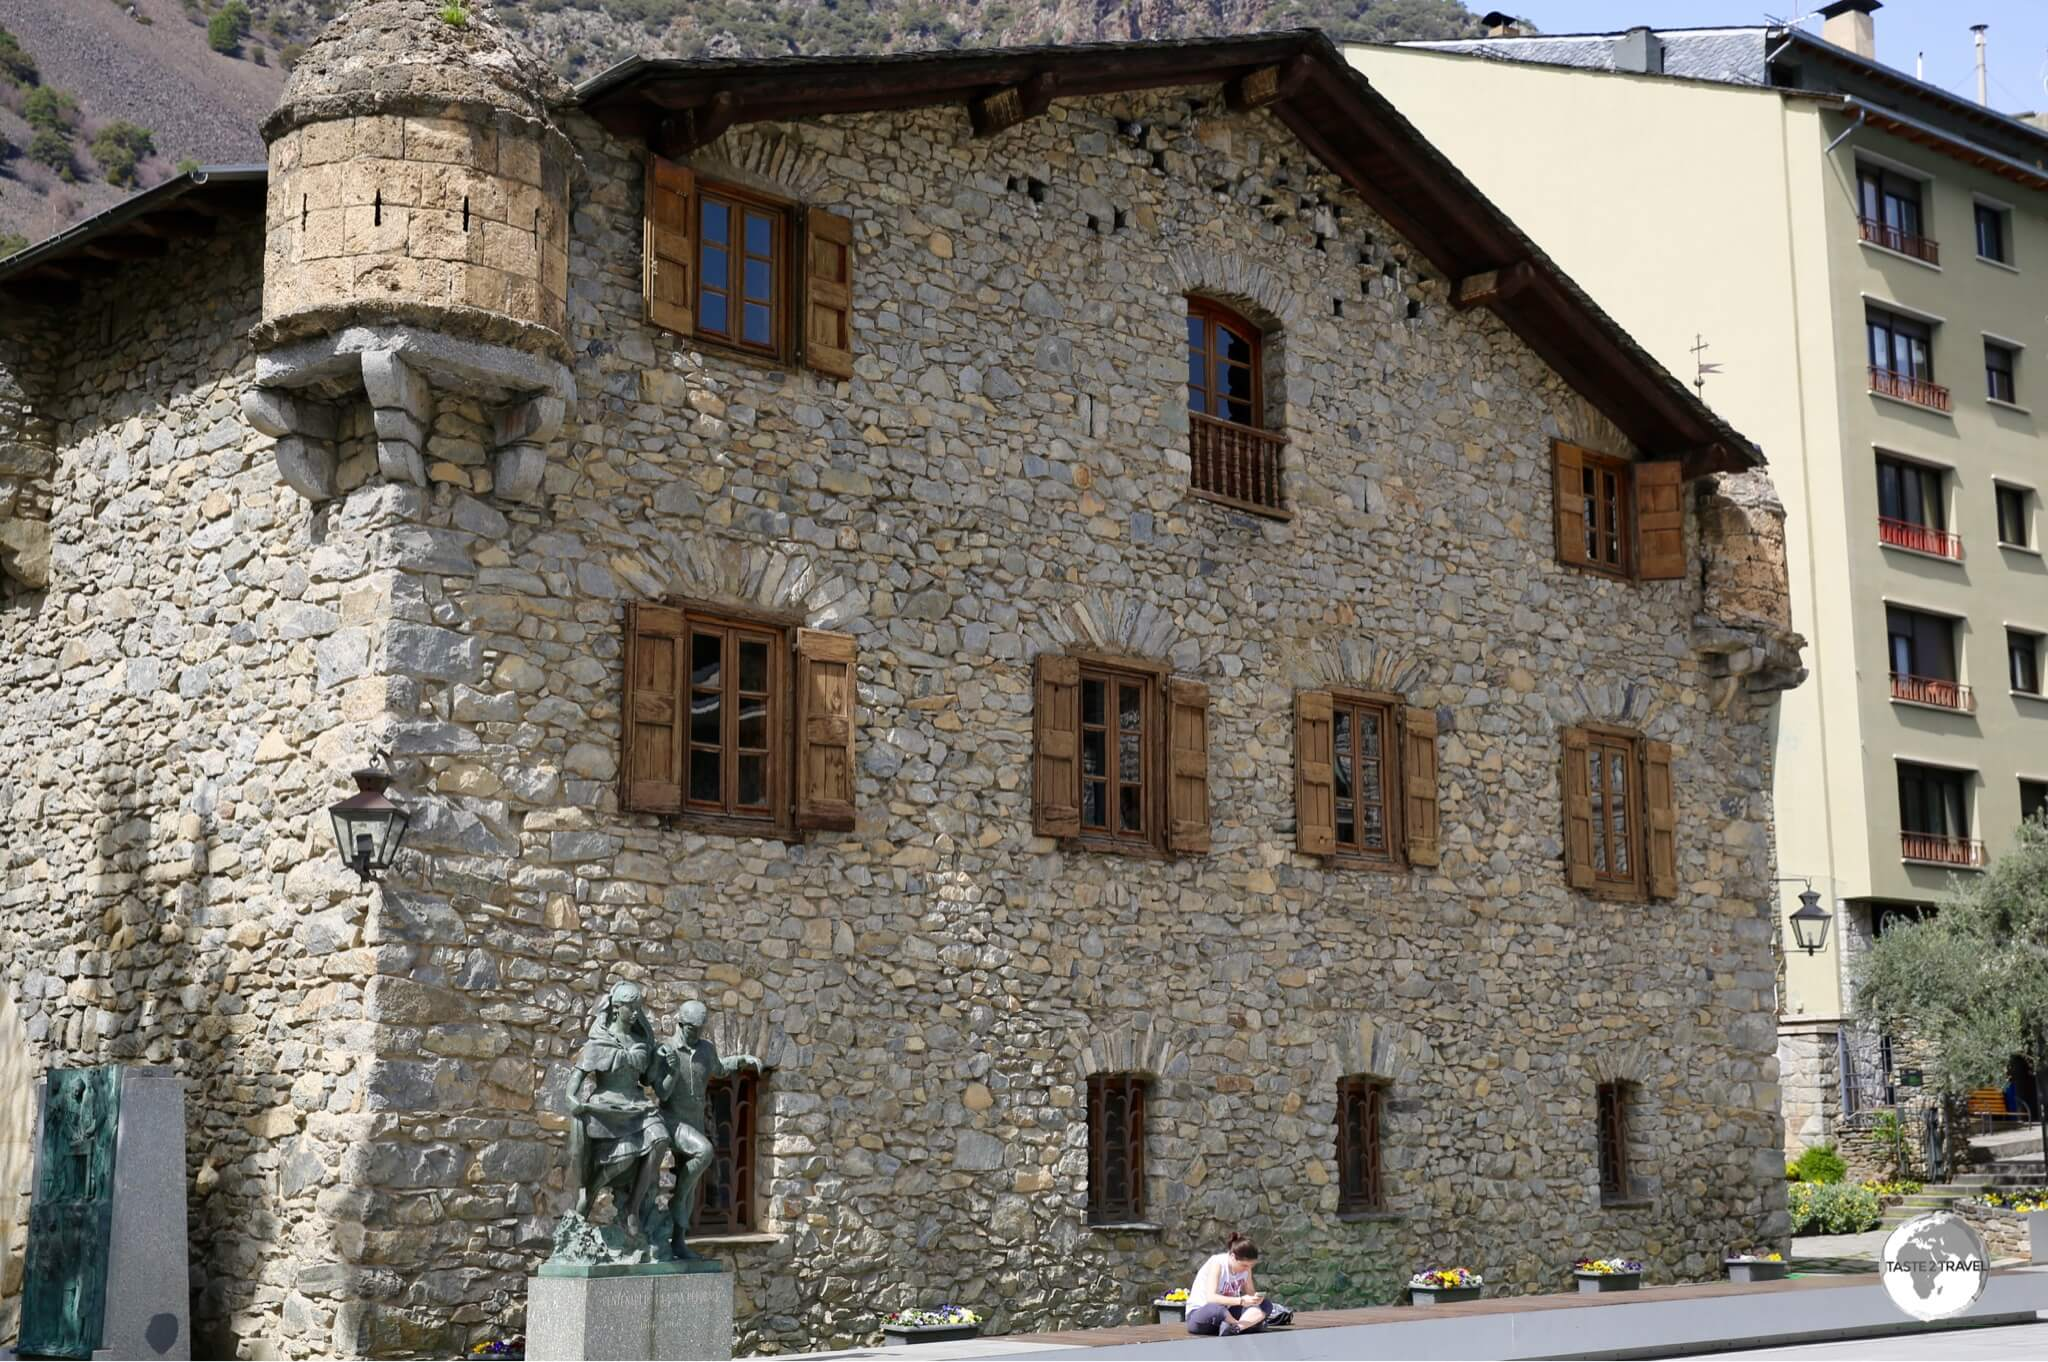 The 16th century Casa de la Vall served as the former Parliament house (General Council).